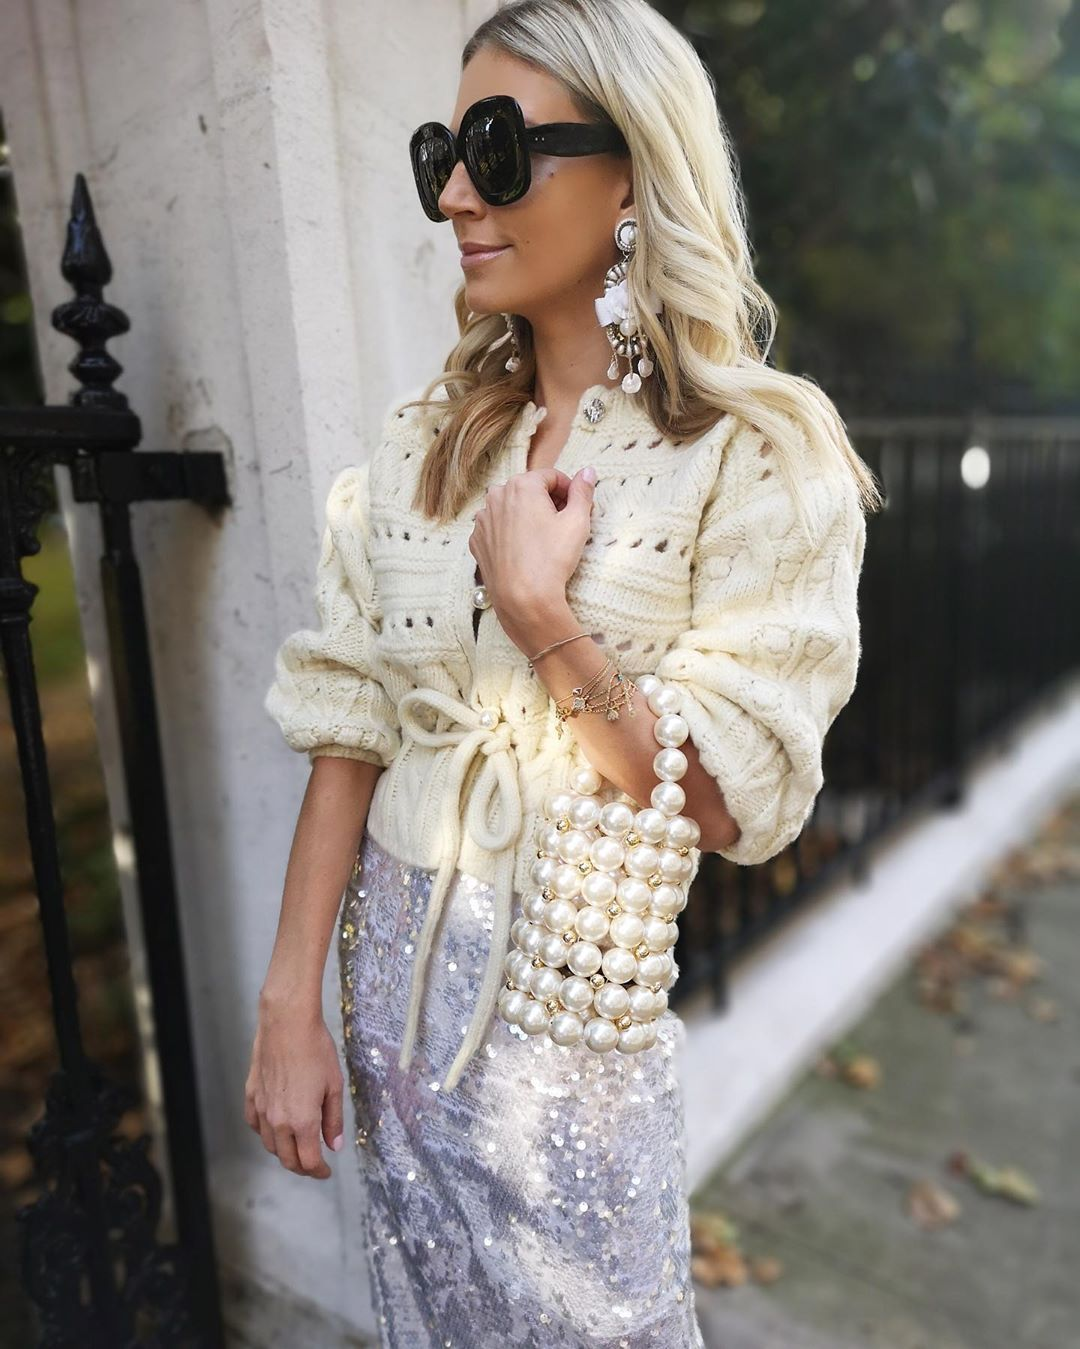 cardigan-sequined-skirt-party-outfit